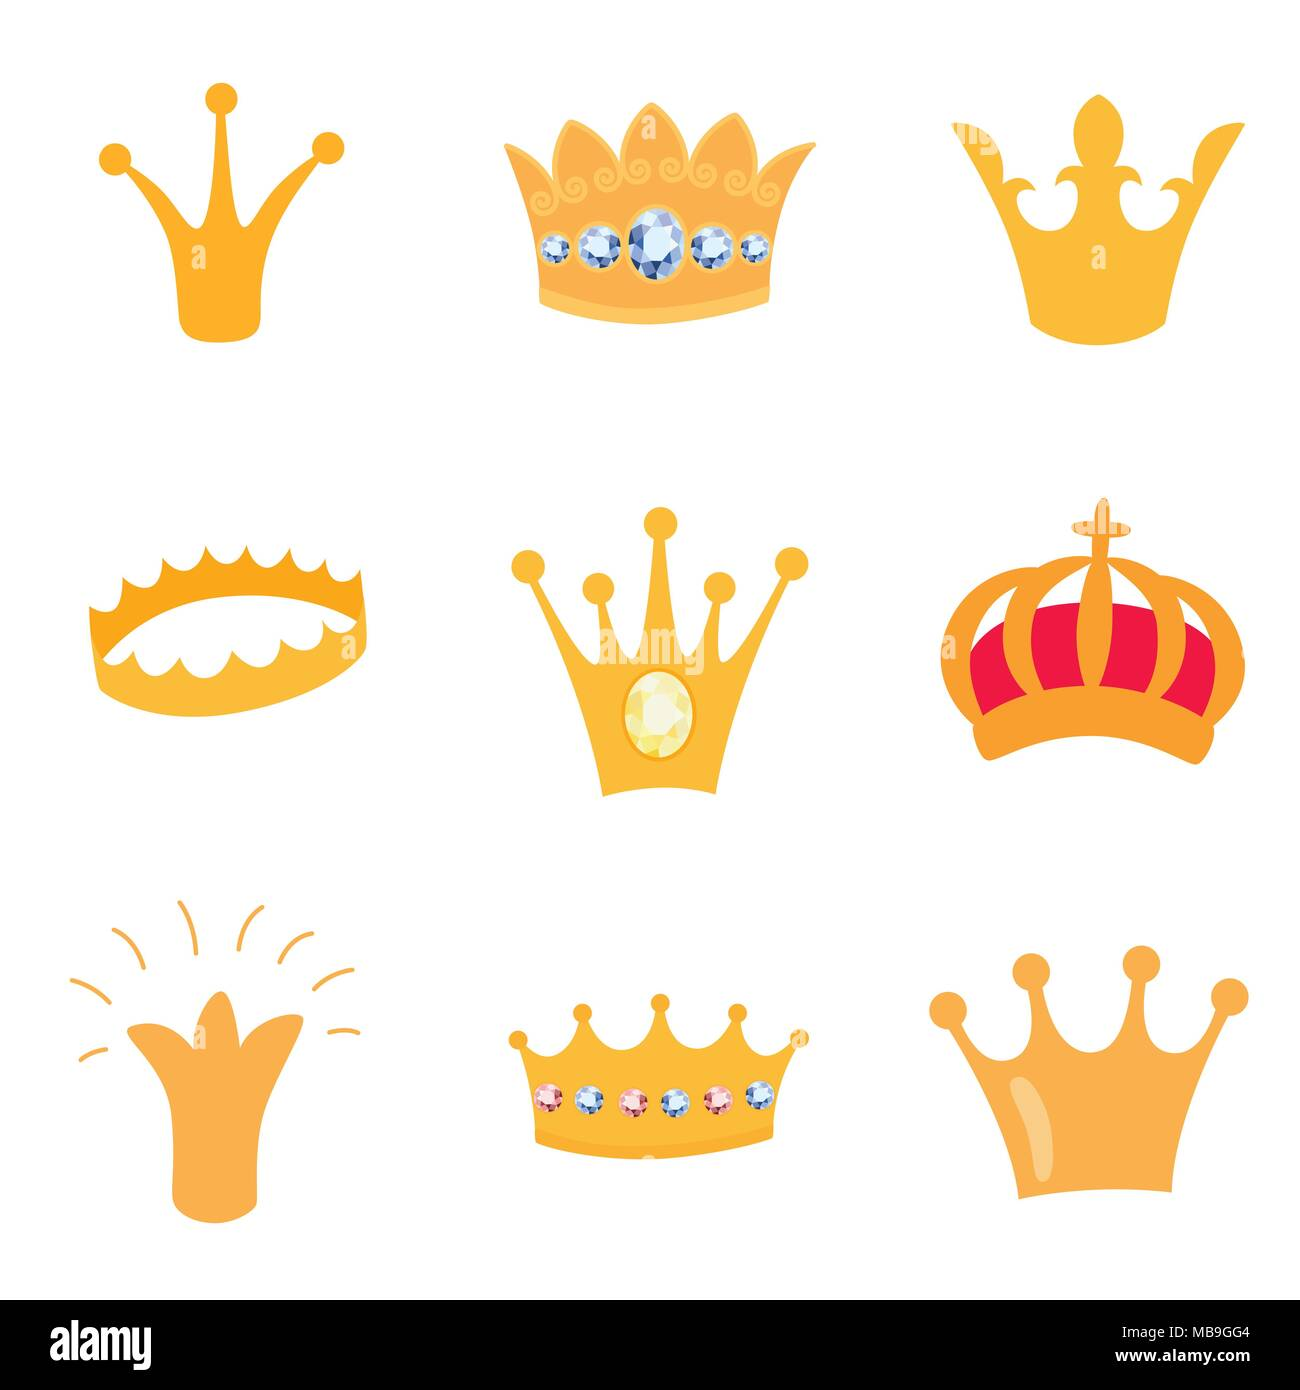 Set of gold crown icons. Vector isolated elements for logo, label, game, hotel, an app design. Royal king, queen, princess crown. - Stock Image